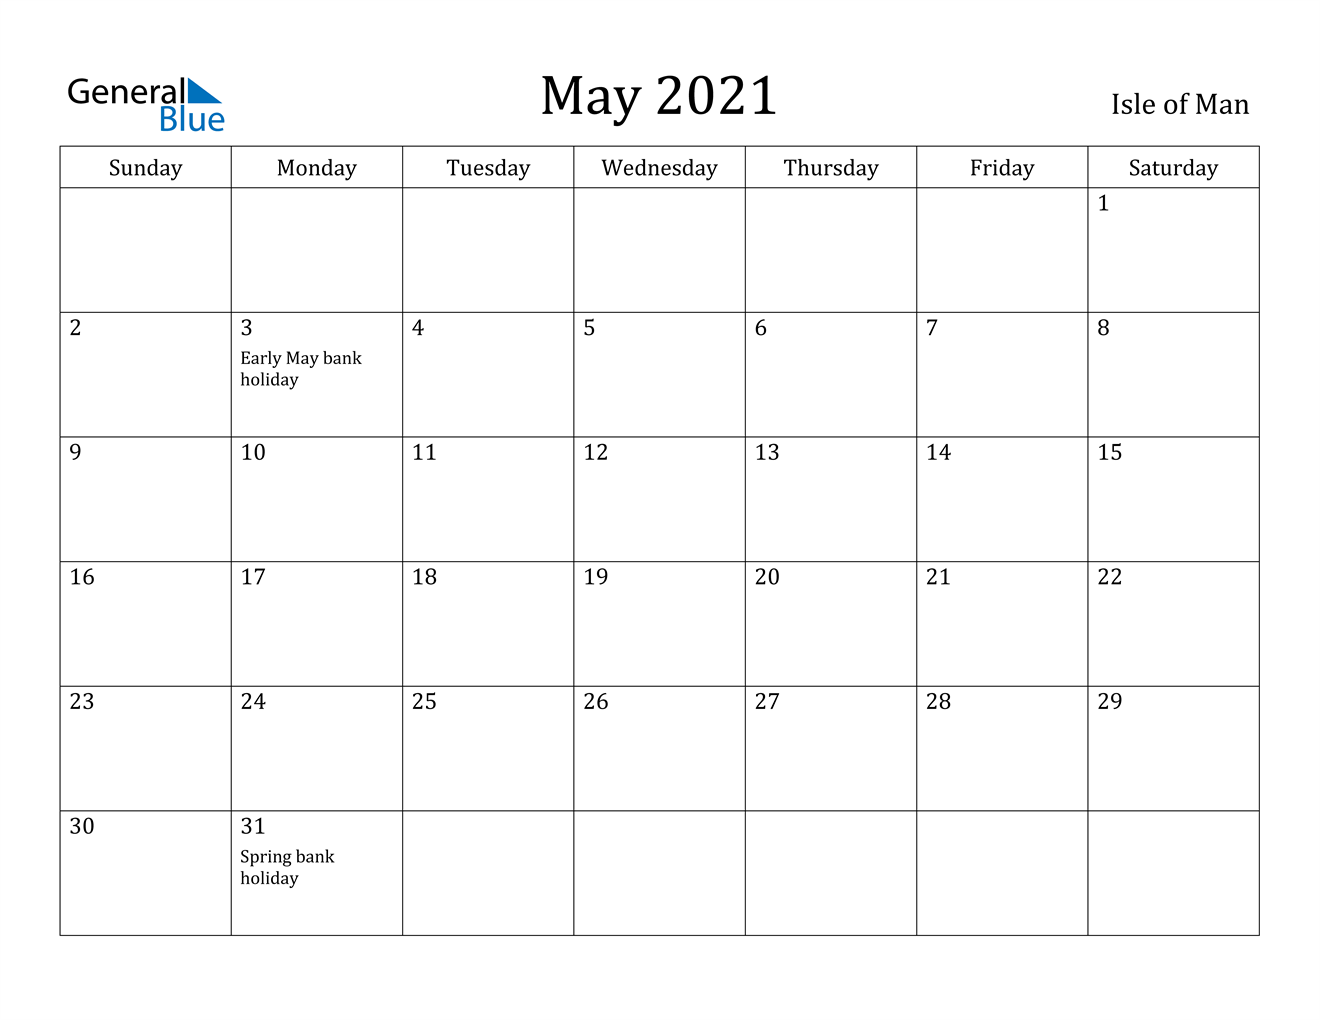 May 2021 Calendar Holidays May 2021 Calendar   Isle of Man